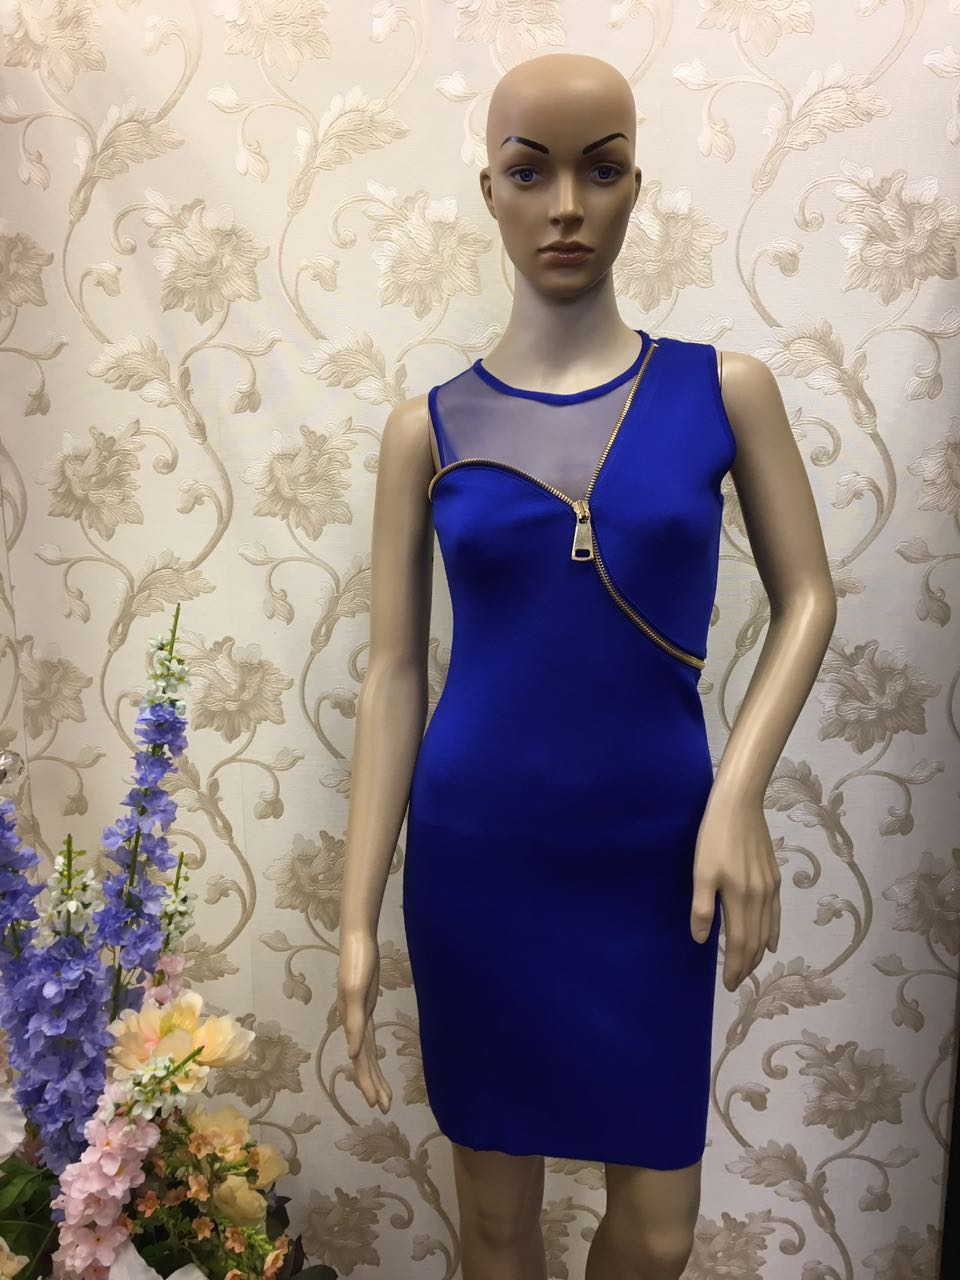 stupendo-exclusive-sapphire-and-mash-dress